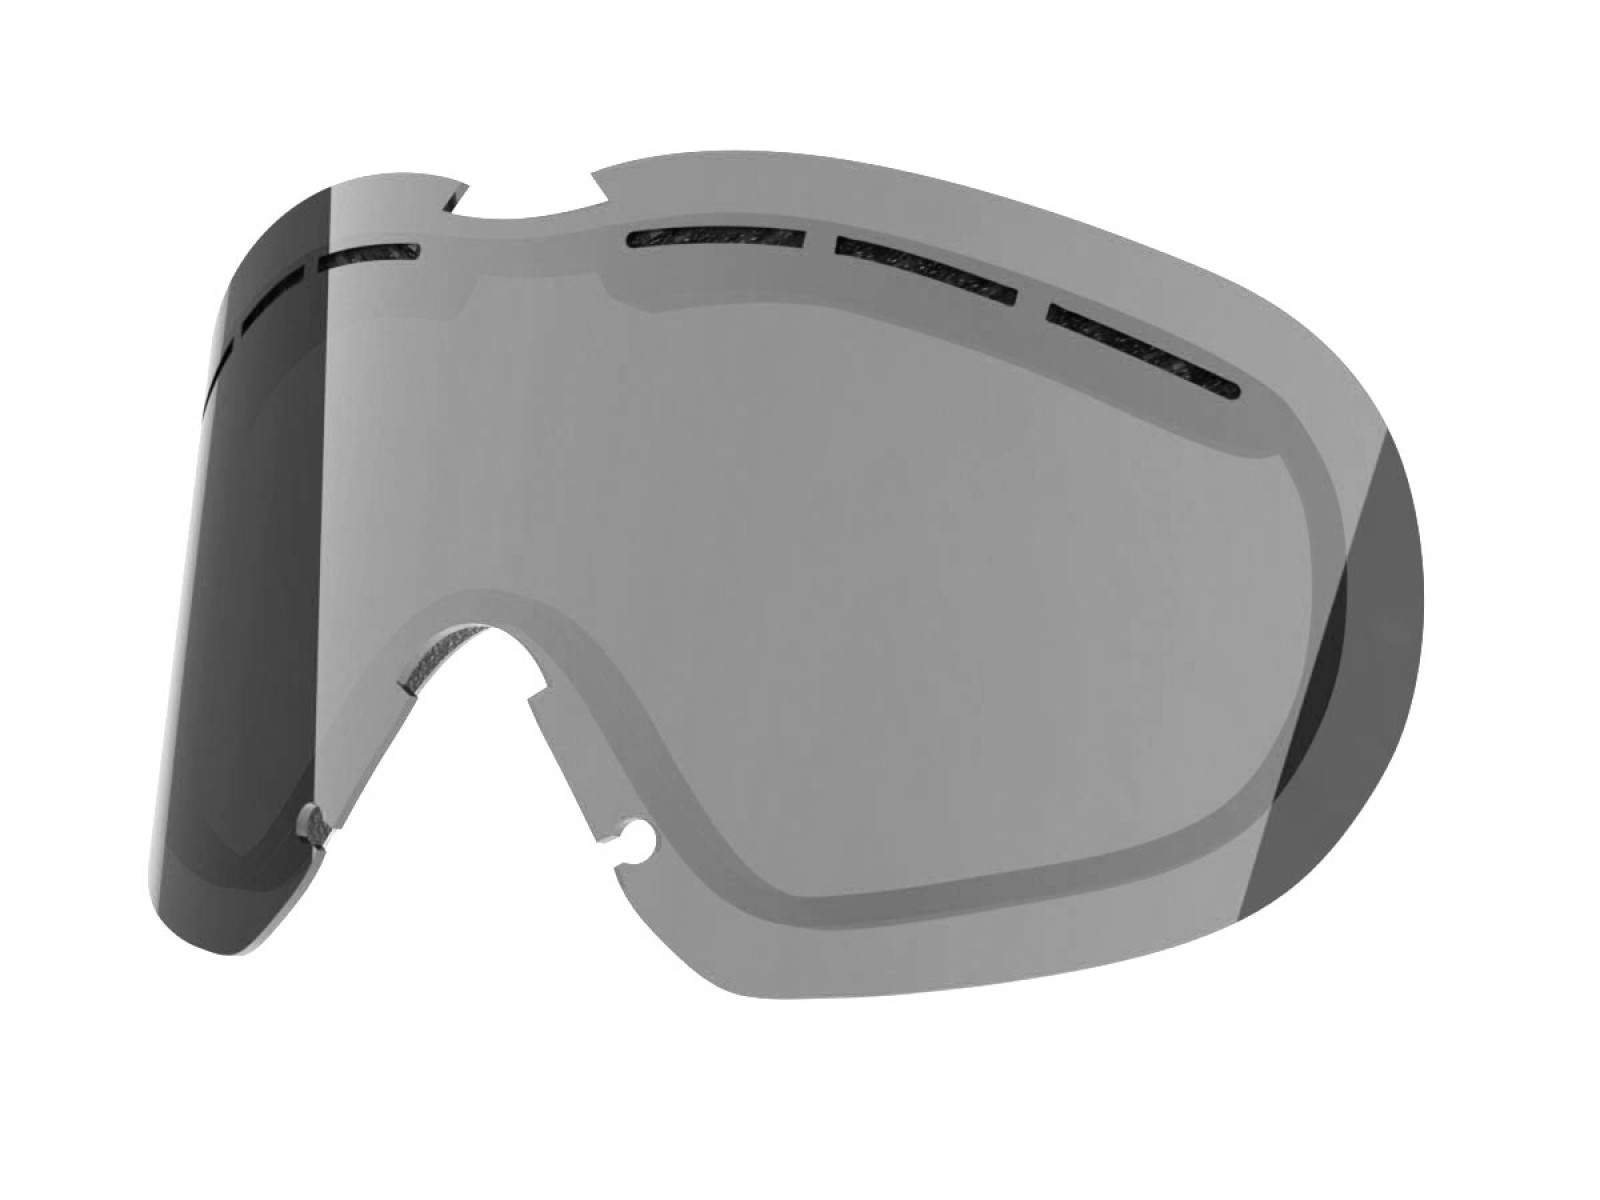 SILVER LENS FOR FLAT SNOW GOGGLE